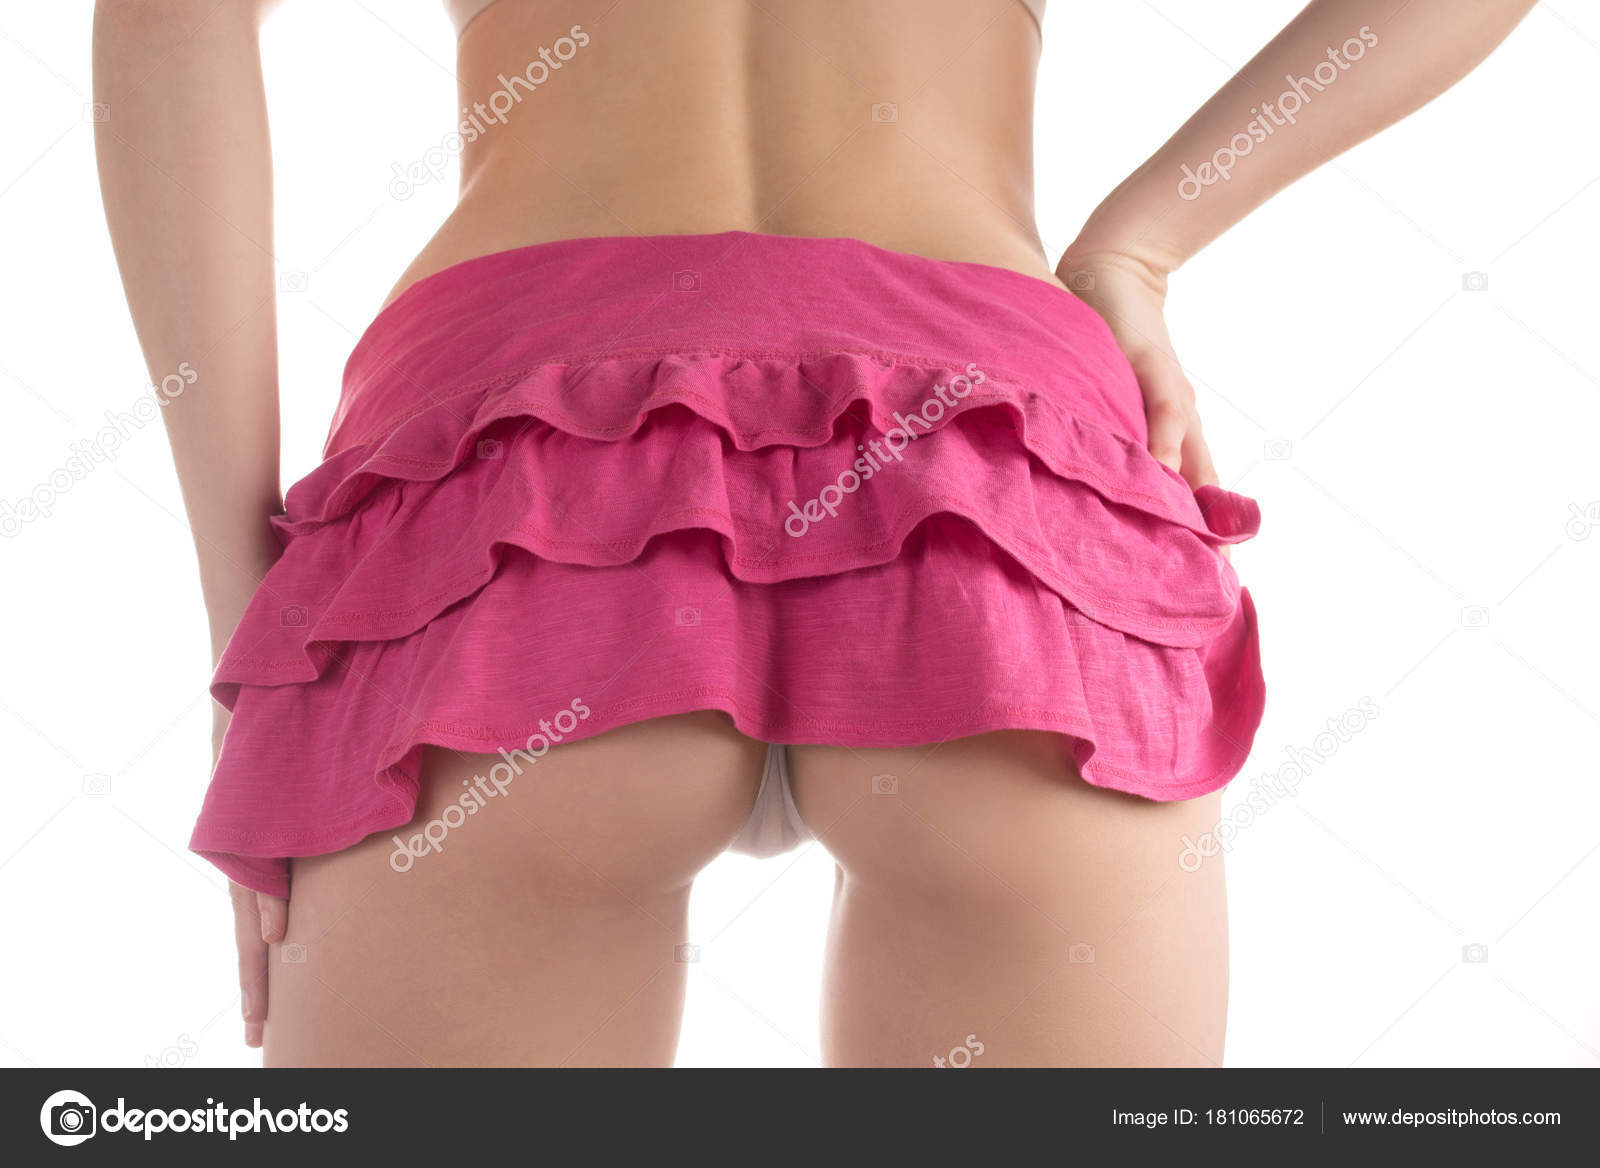 Nice asses in mini skirts